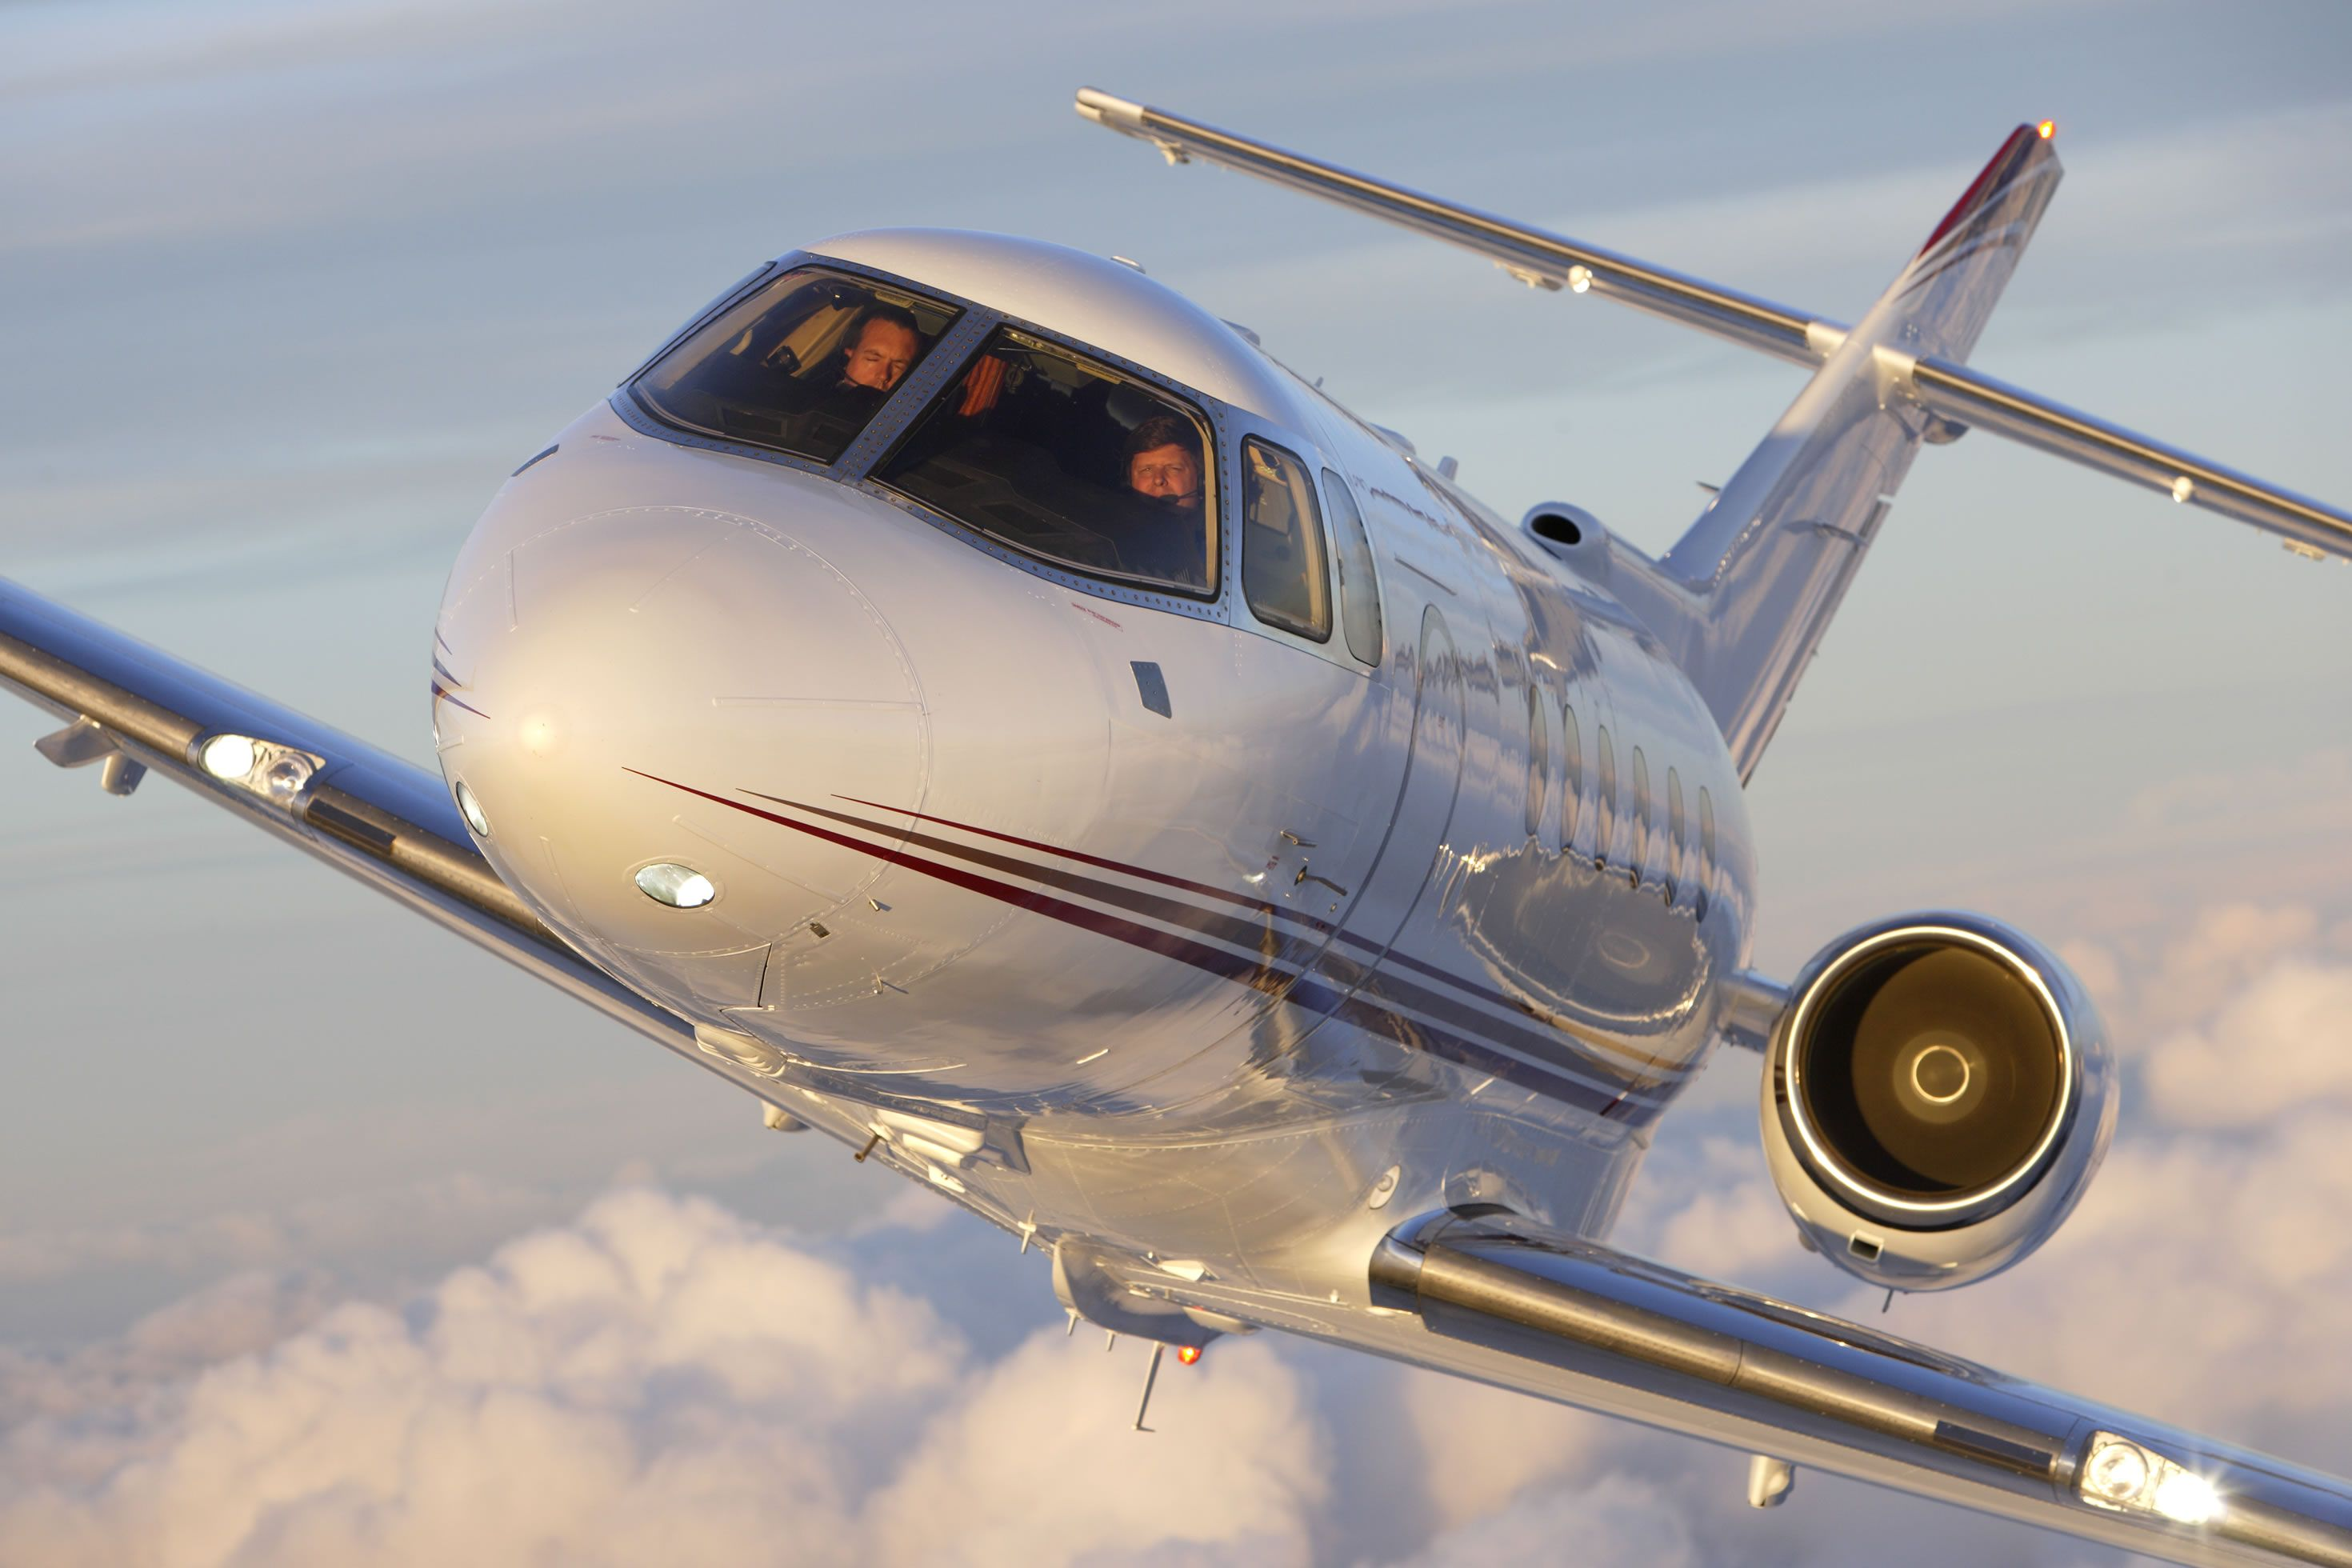 Search private jet rental prices - Find This Pin And More On Up Up And Away Aviation Flights Military Plane Tickets For Cheap